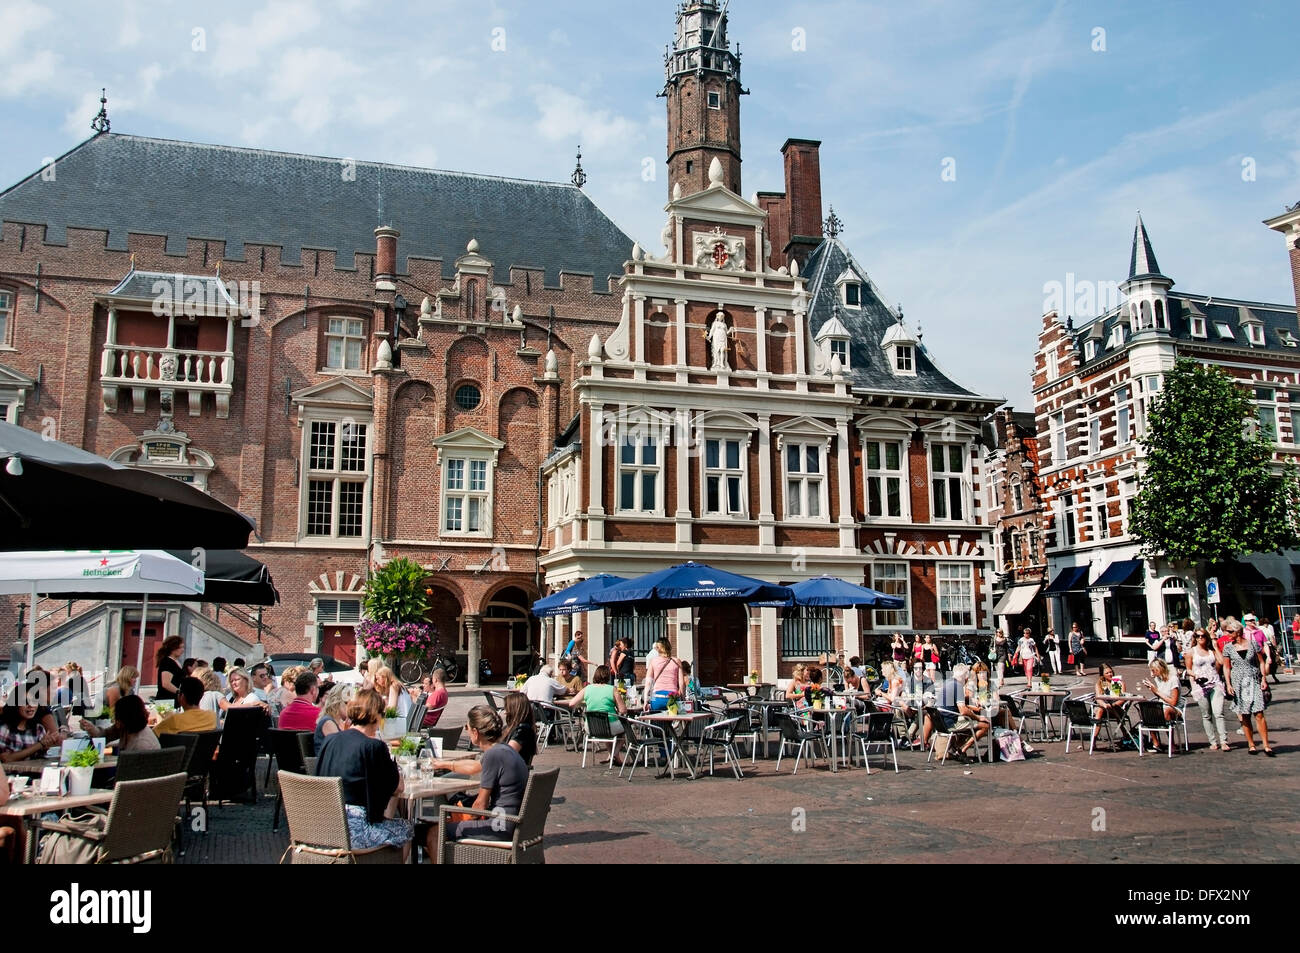 dating holland netherlands haarlem This haarlem has 2 a's  haarlem in netherlands  a have very fond memories of a visit to holland a couple of years ago.